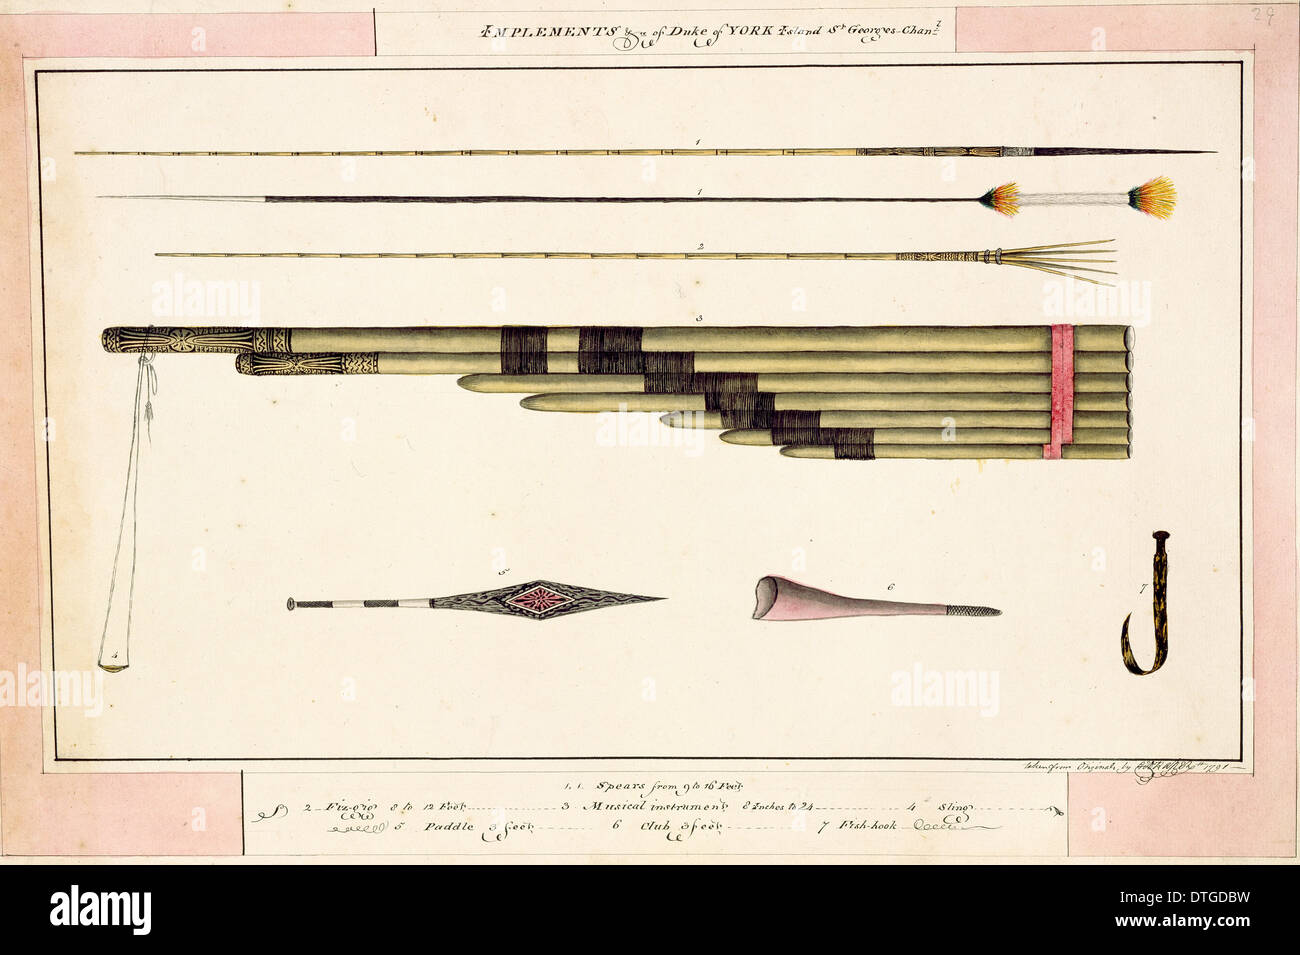 Implements of the Duke of York Islands and St Georges Channel - Stock Image